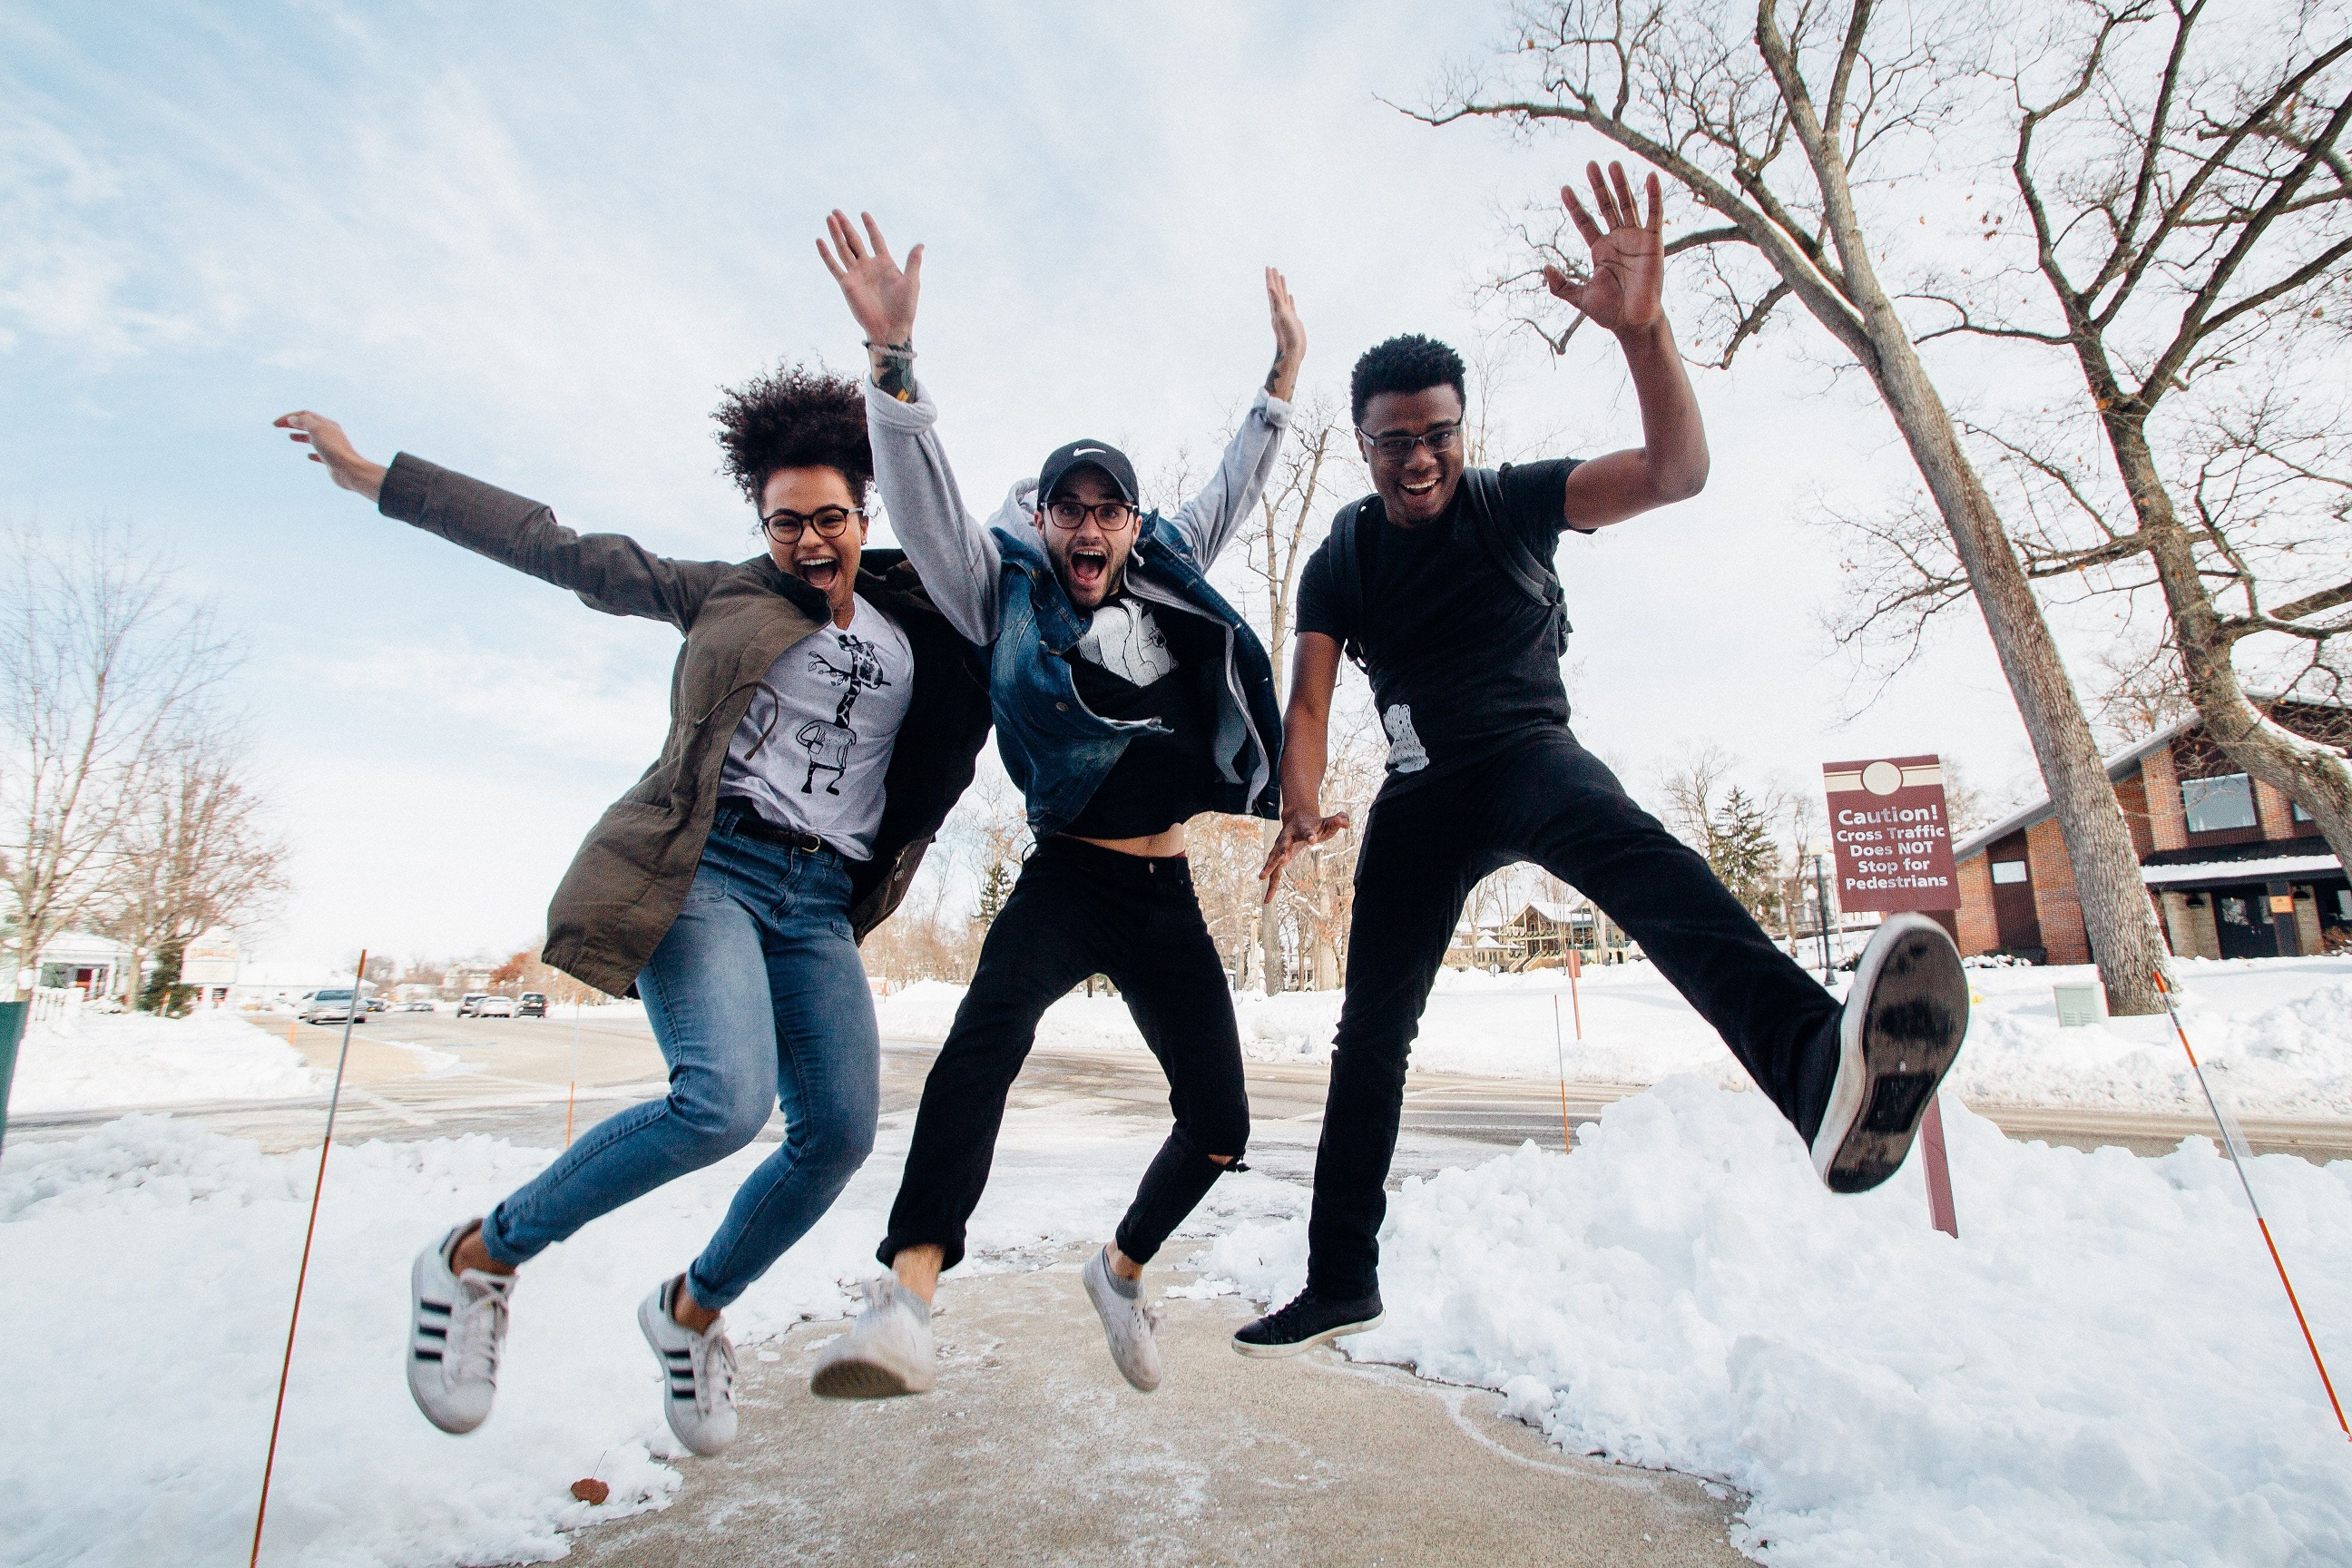 3 students jumping in the air with snow on the ground beneath them